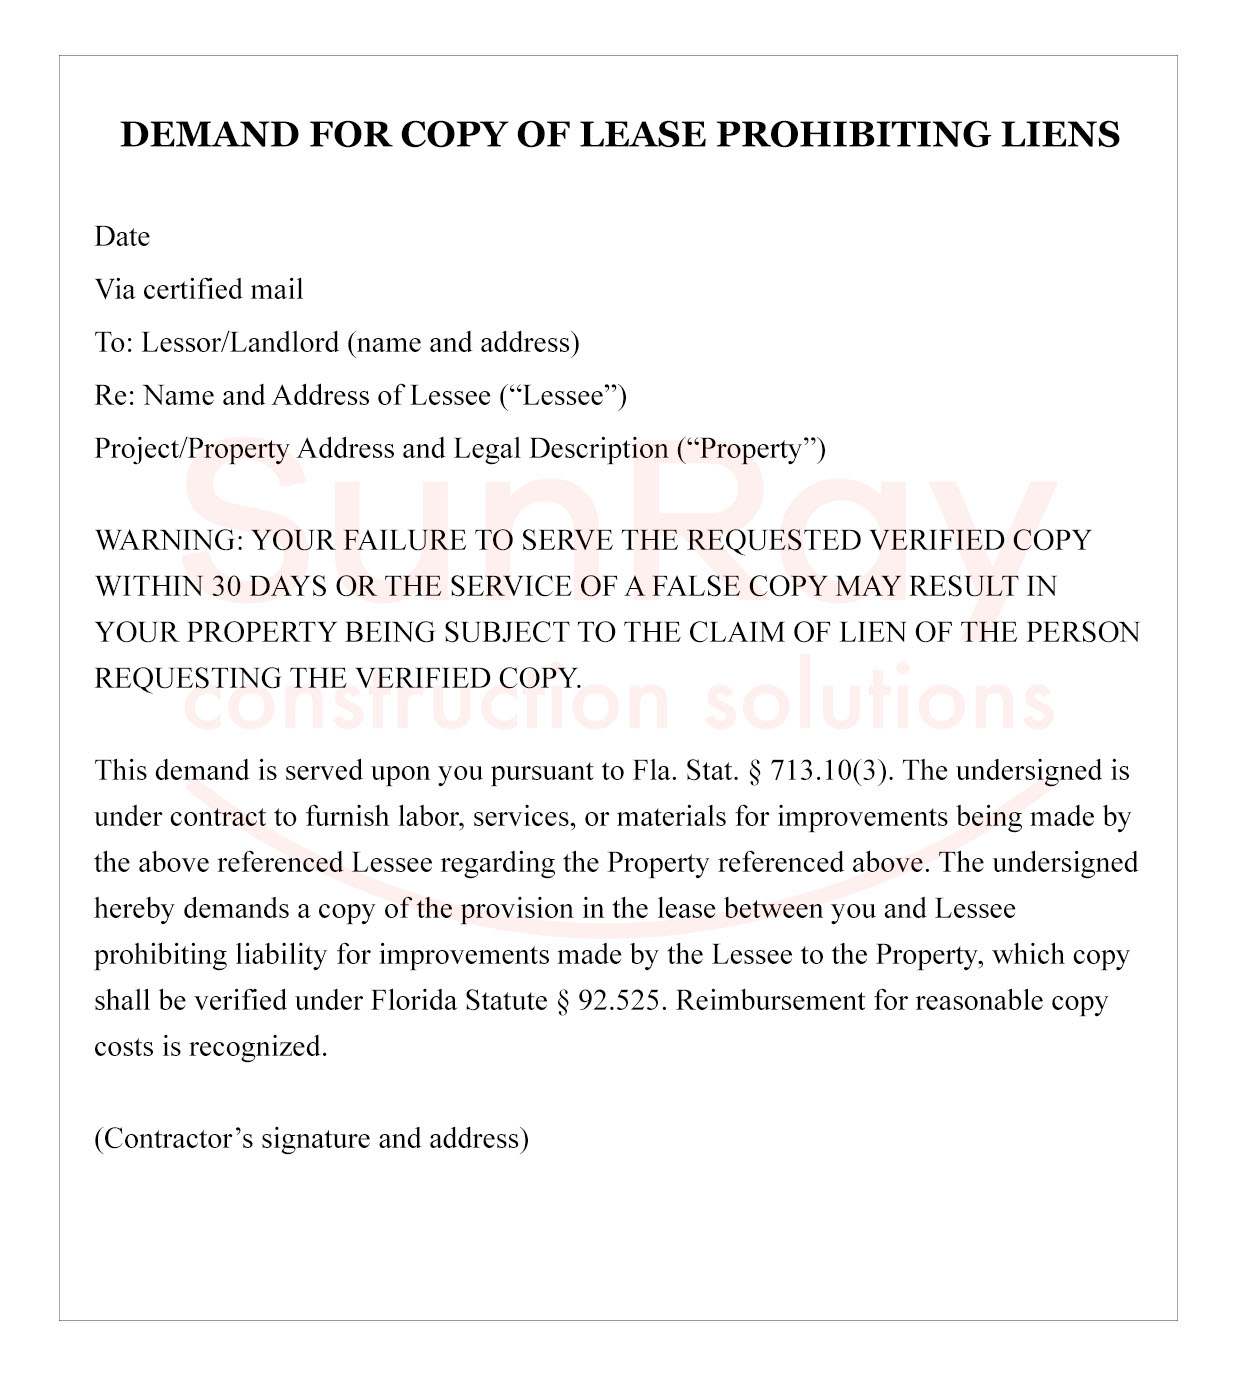 Demand for Copy of Lease Prohibiting Liens